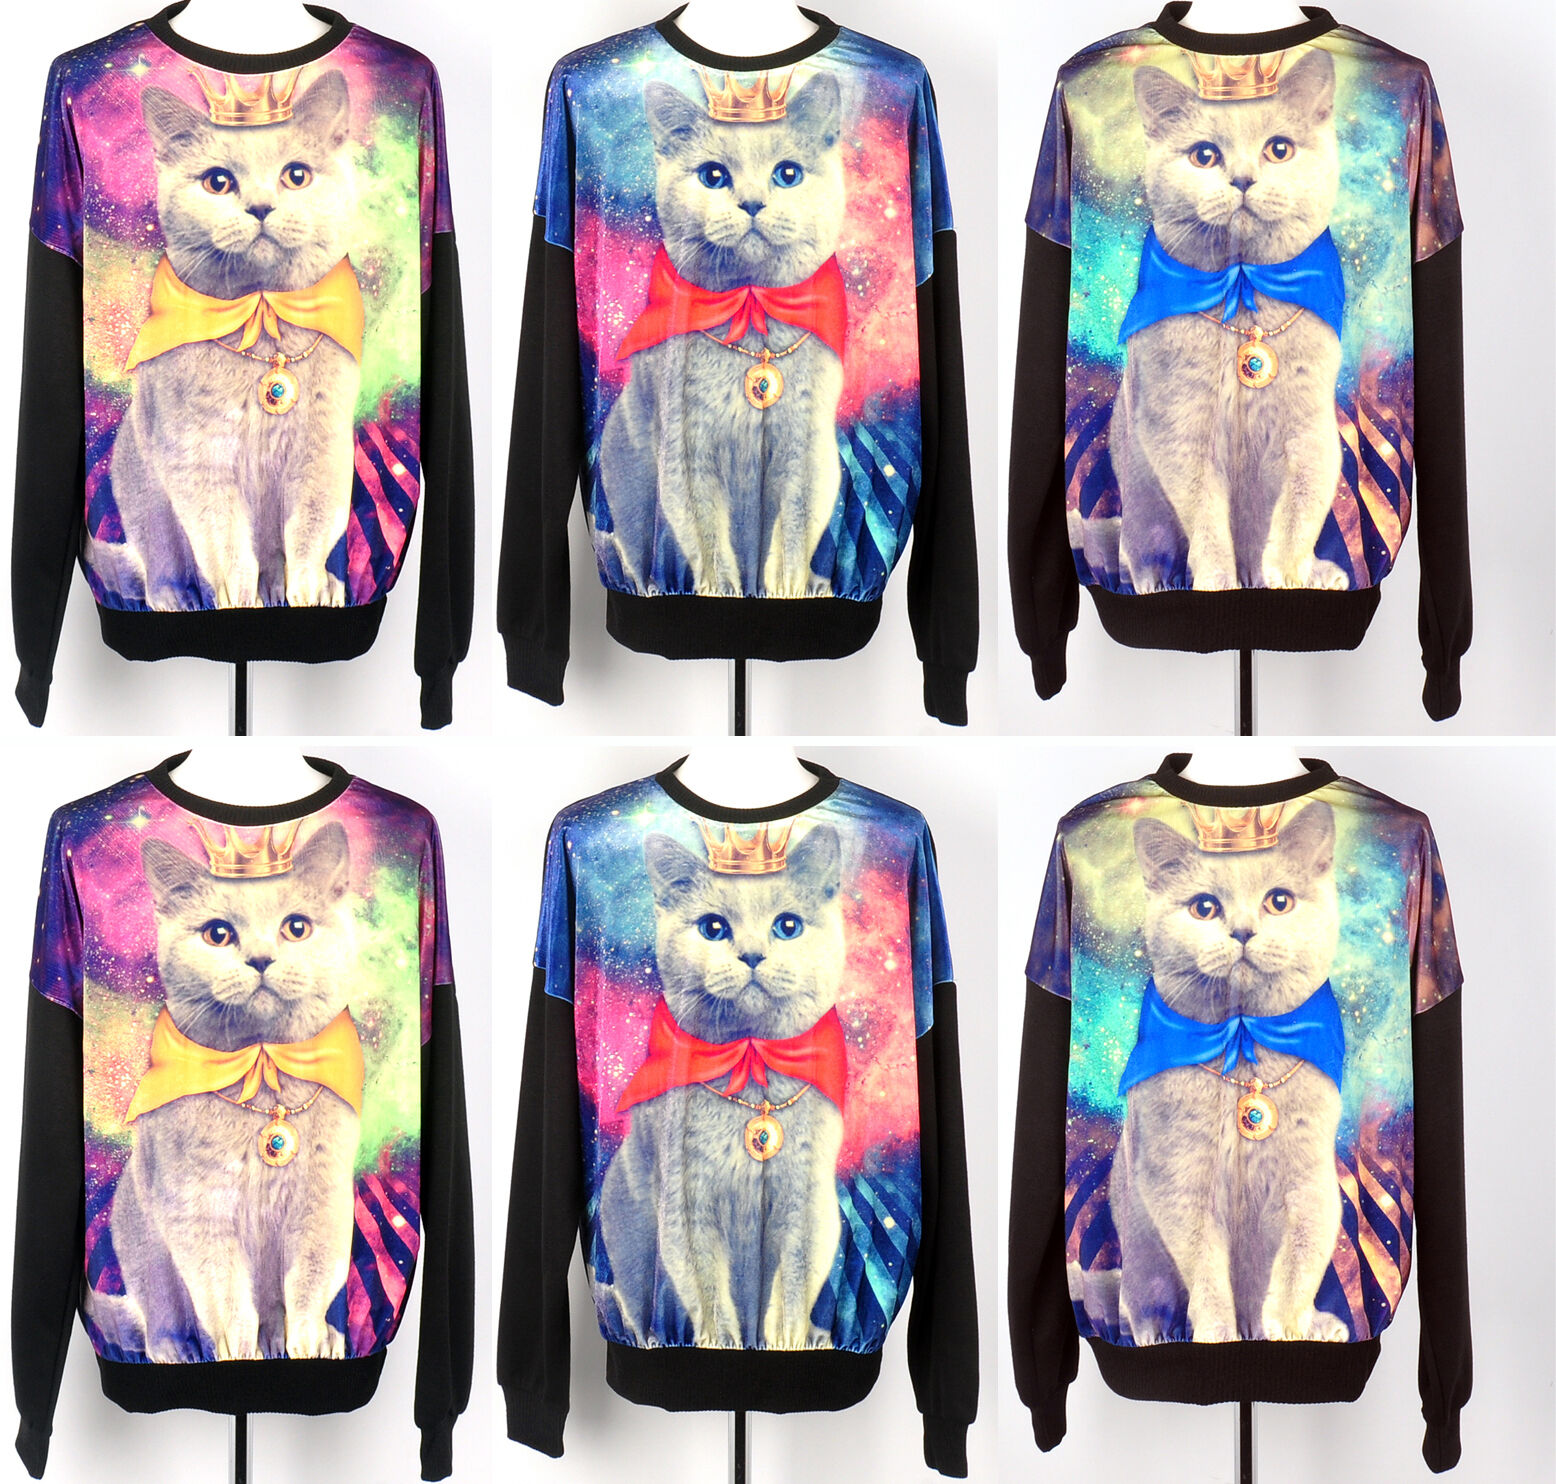 womens Galaxy cat t shirts loose stellar velvet graphic shirt long sleeve red